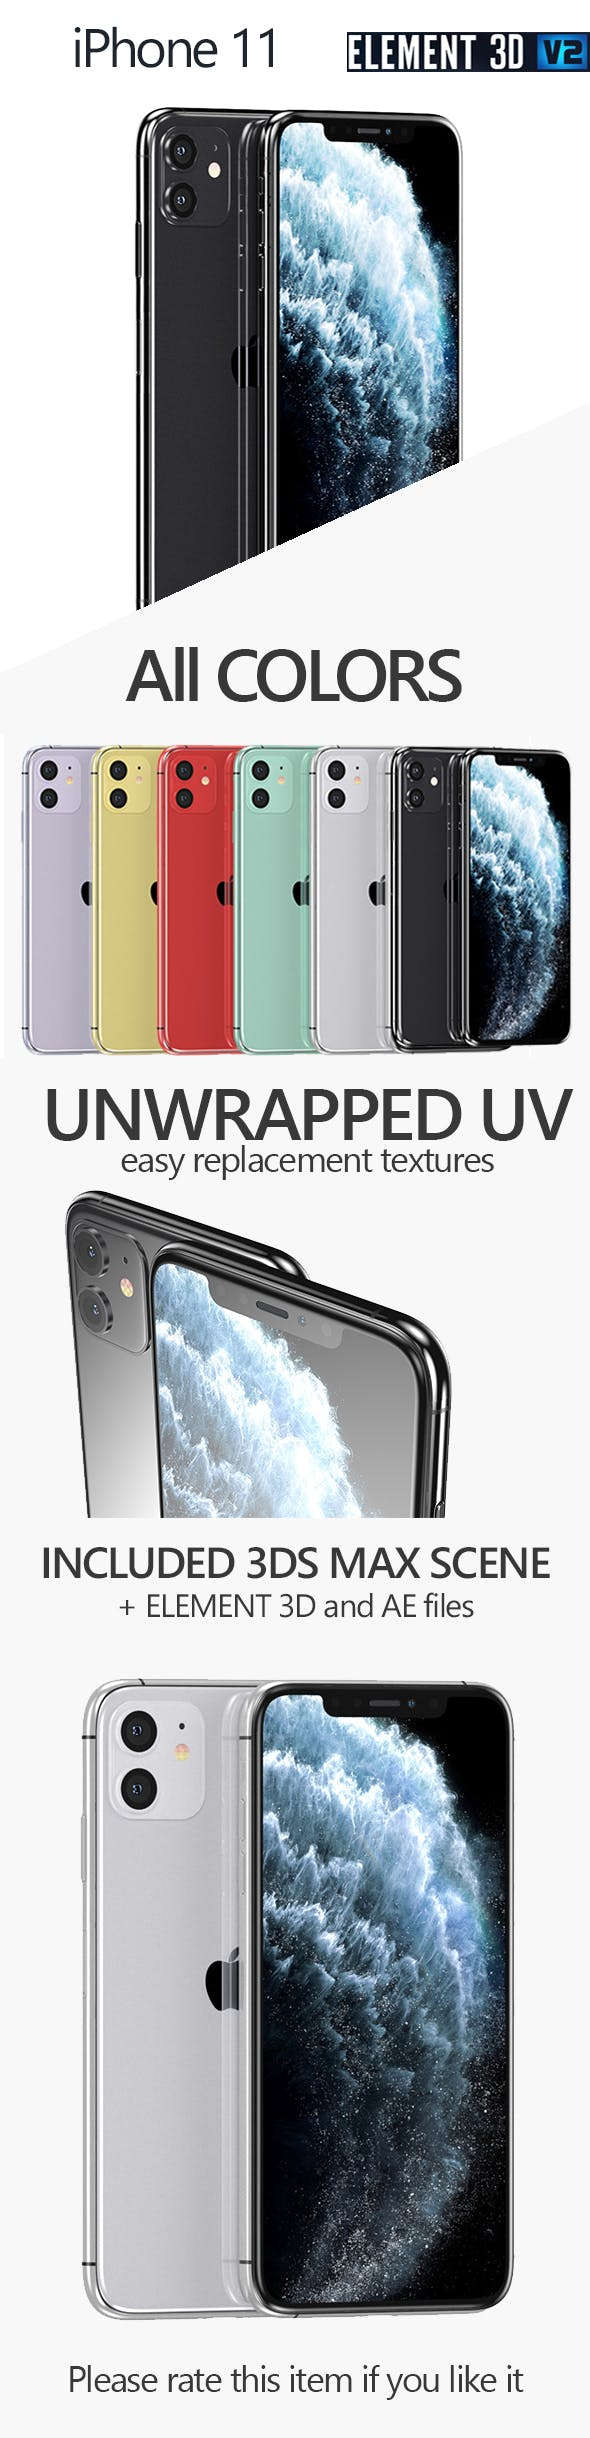 Apple iPhone 11 - All Colors - 3DOcean Item for Sale